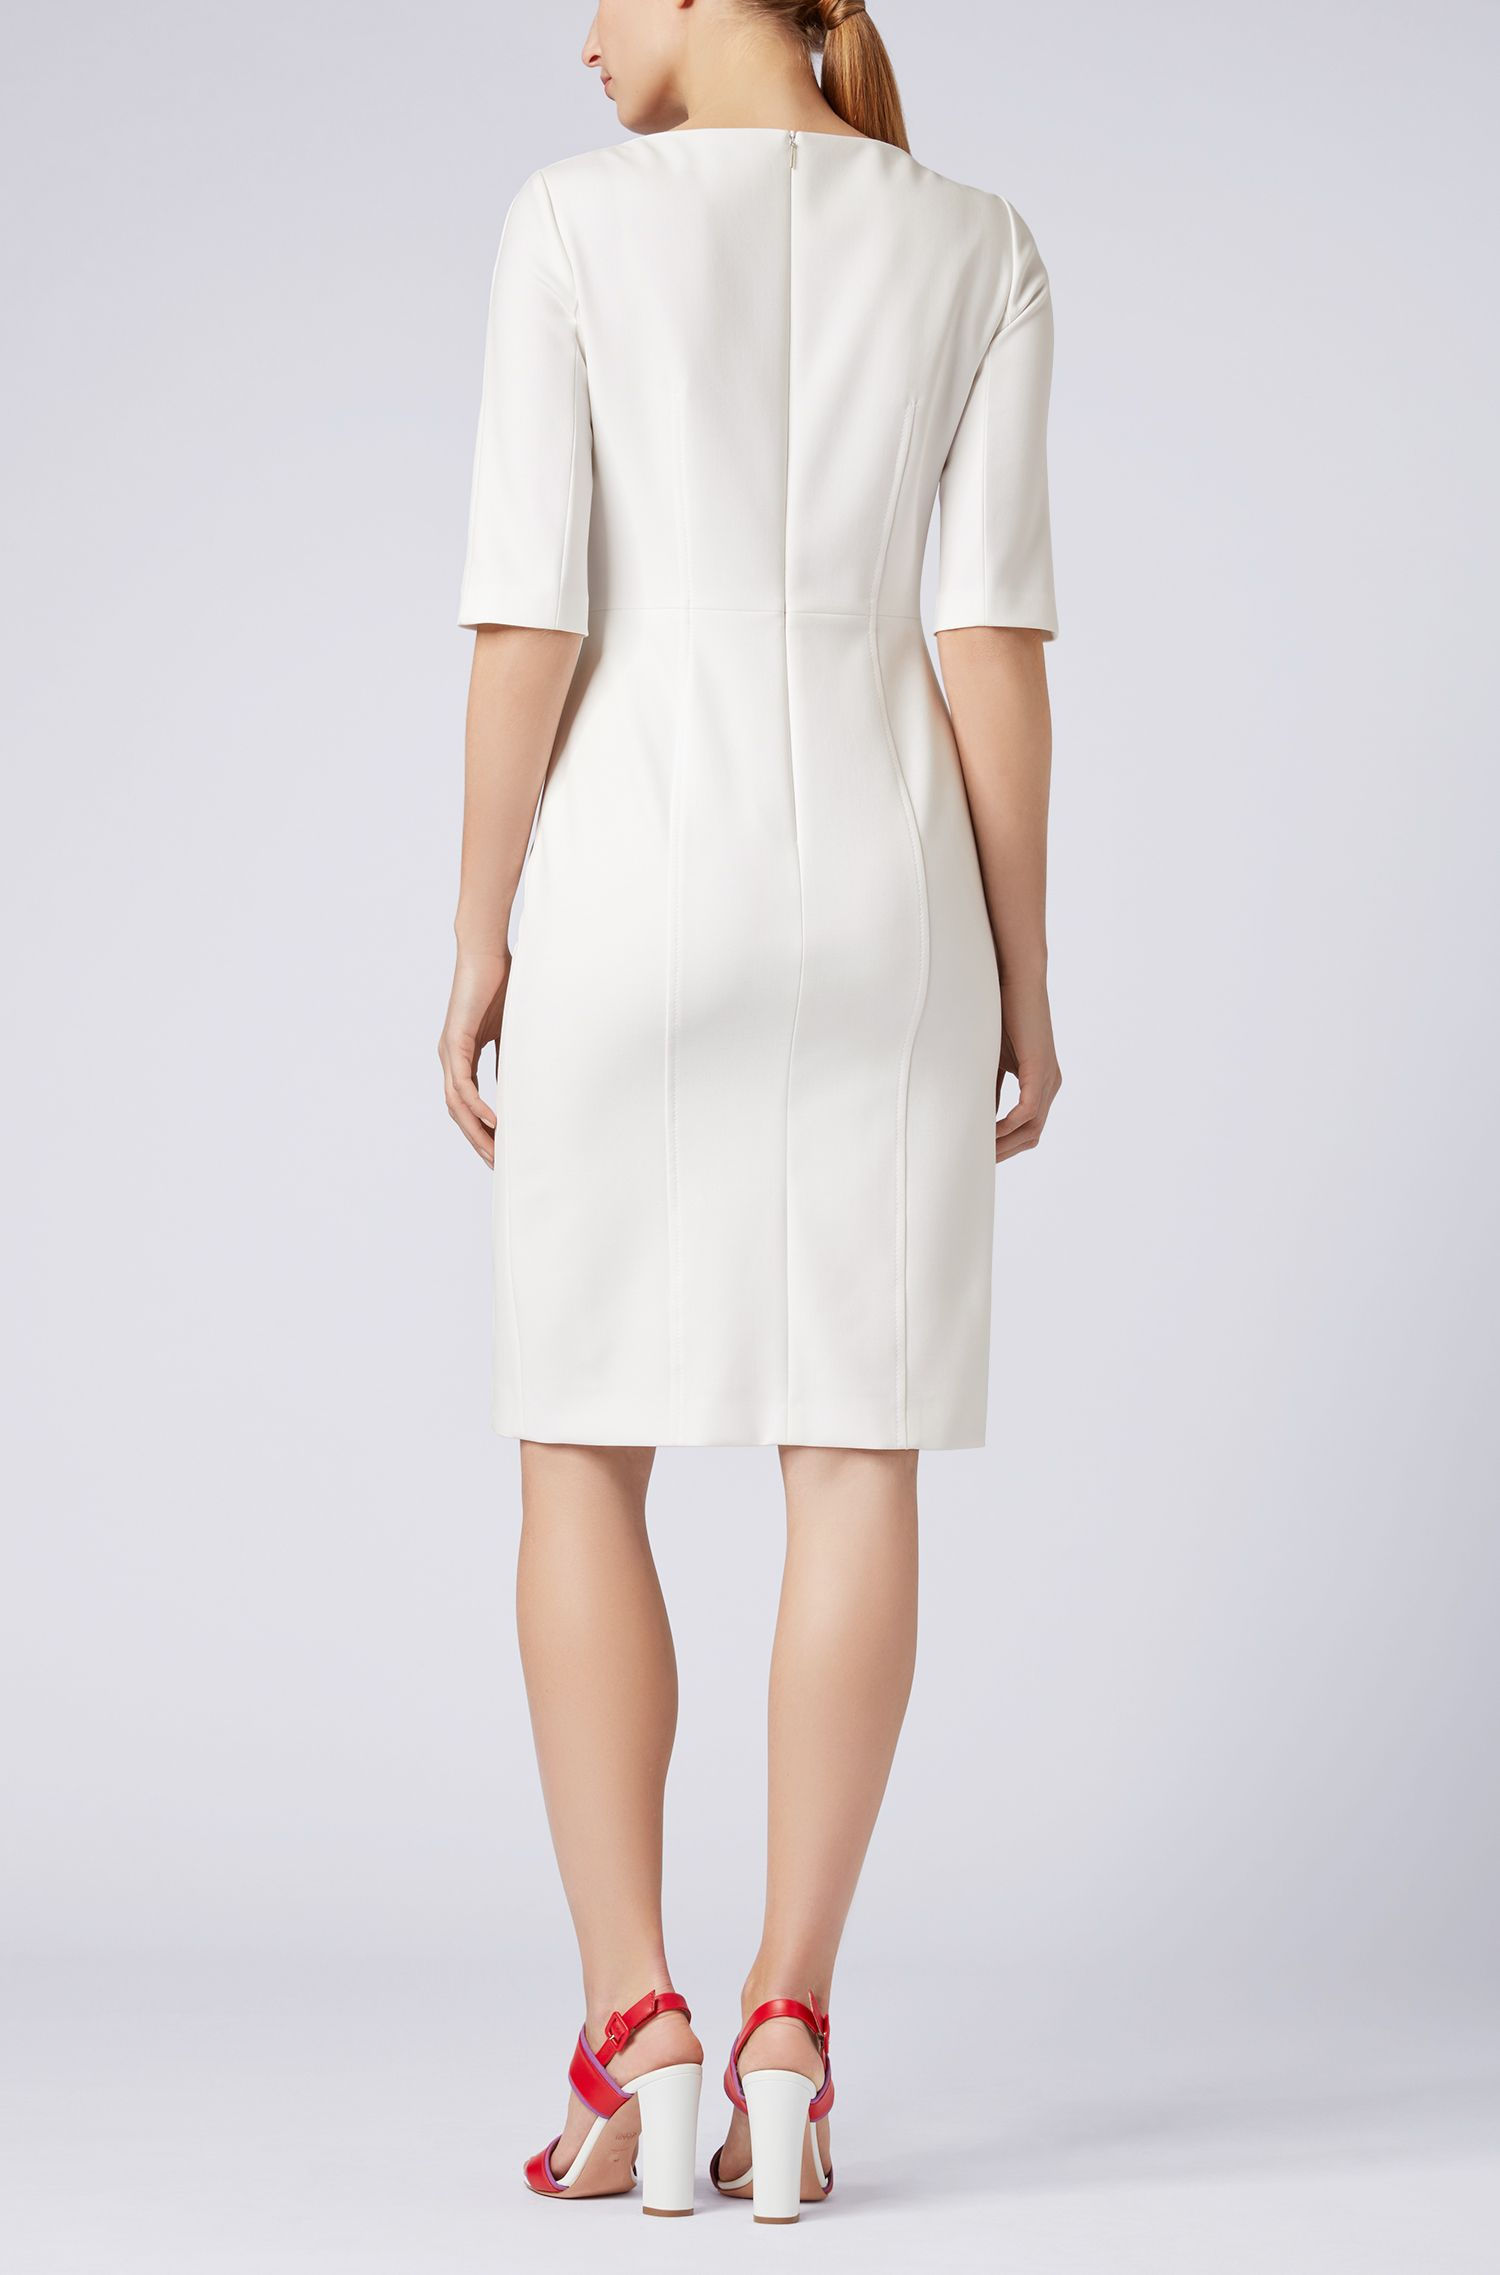 Three-quarter-sleeve dress with button detailing